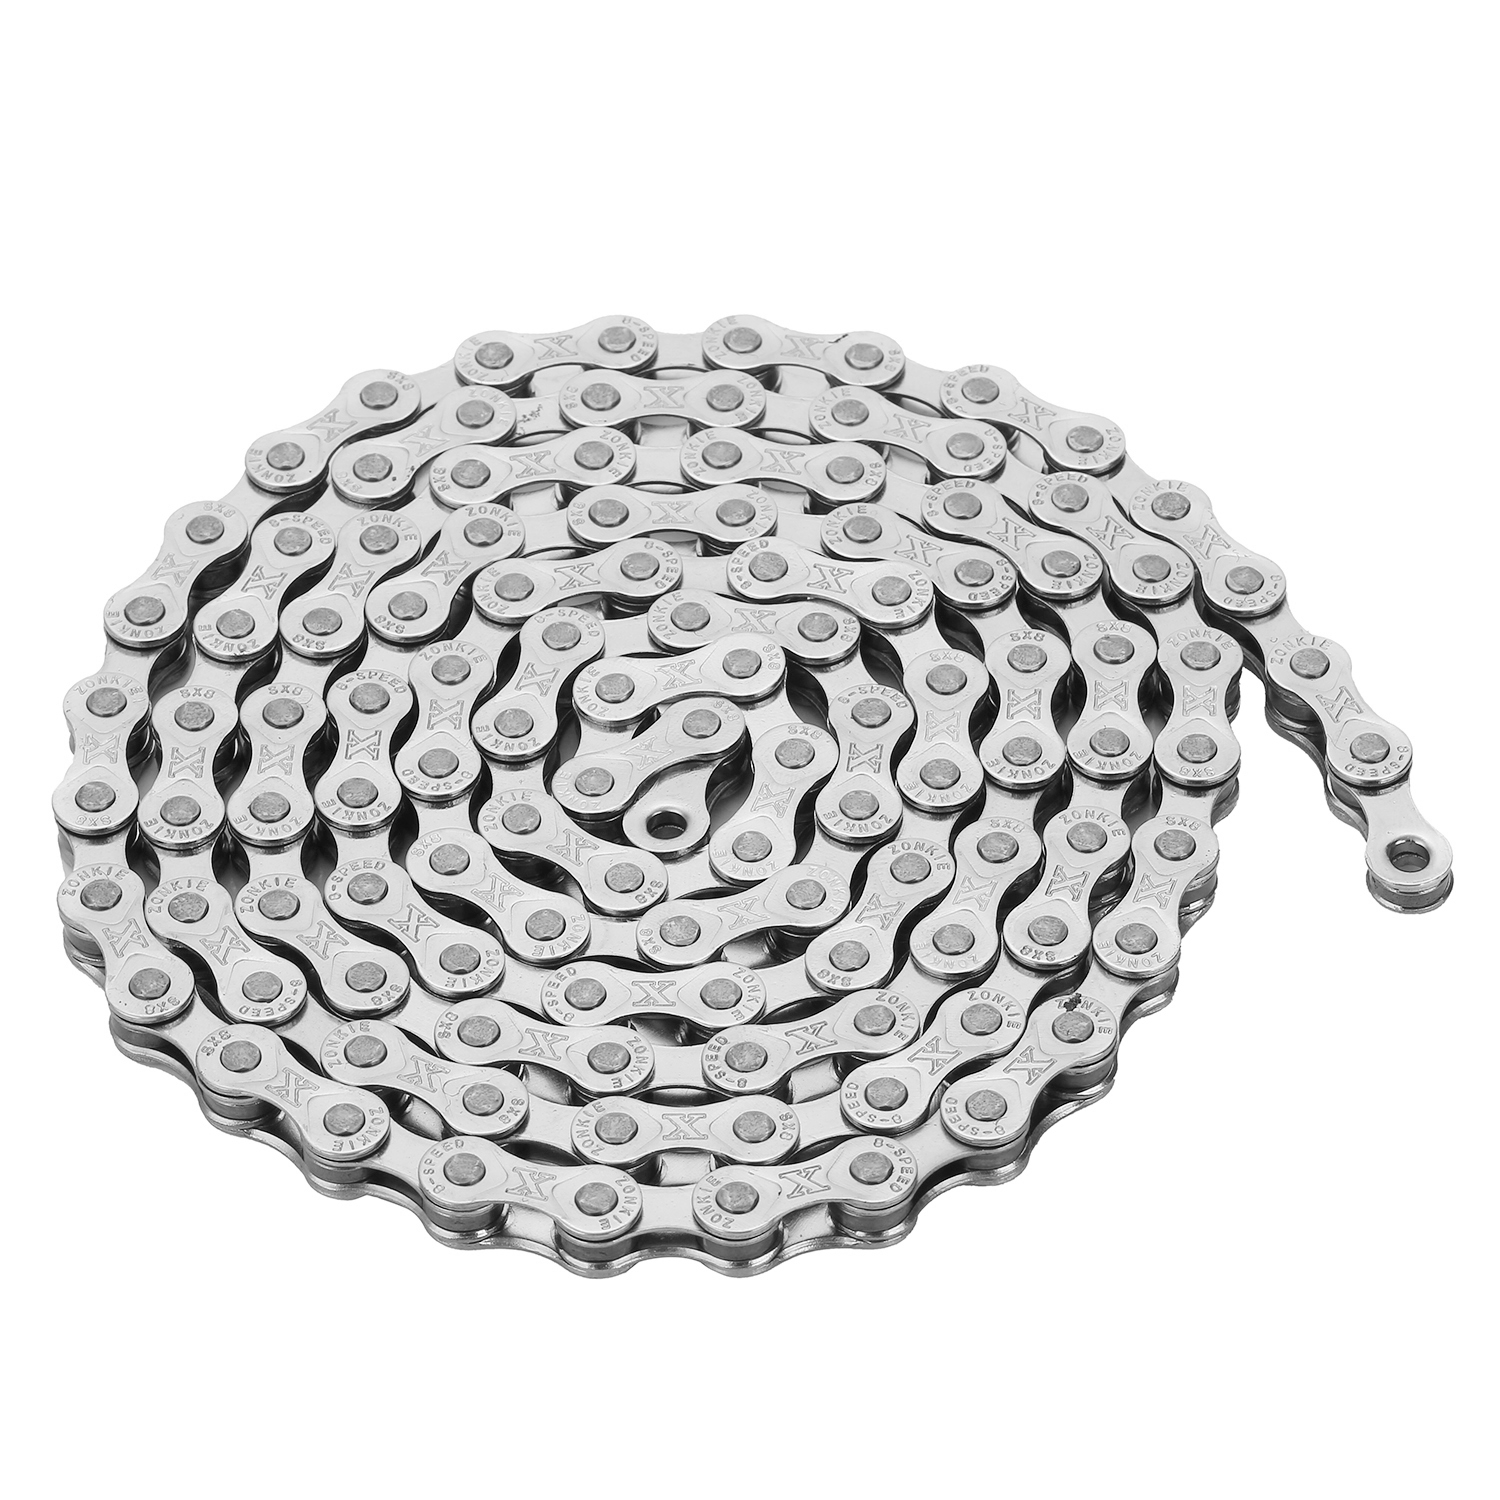 ZK-XSX8 5/6/7/8-Speed Bicycle Chain